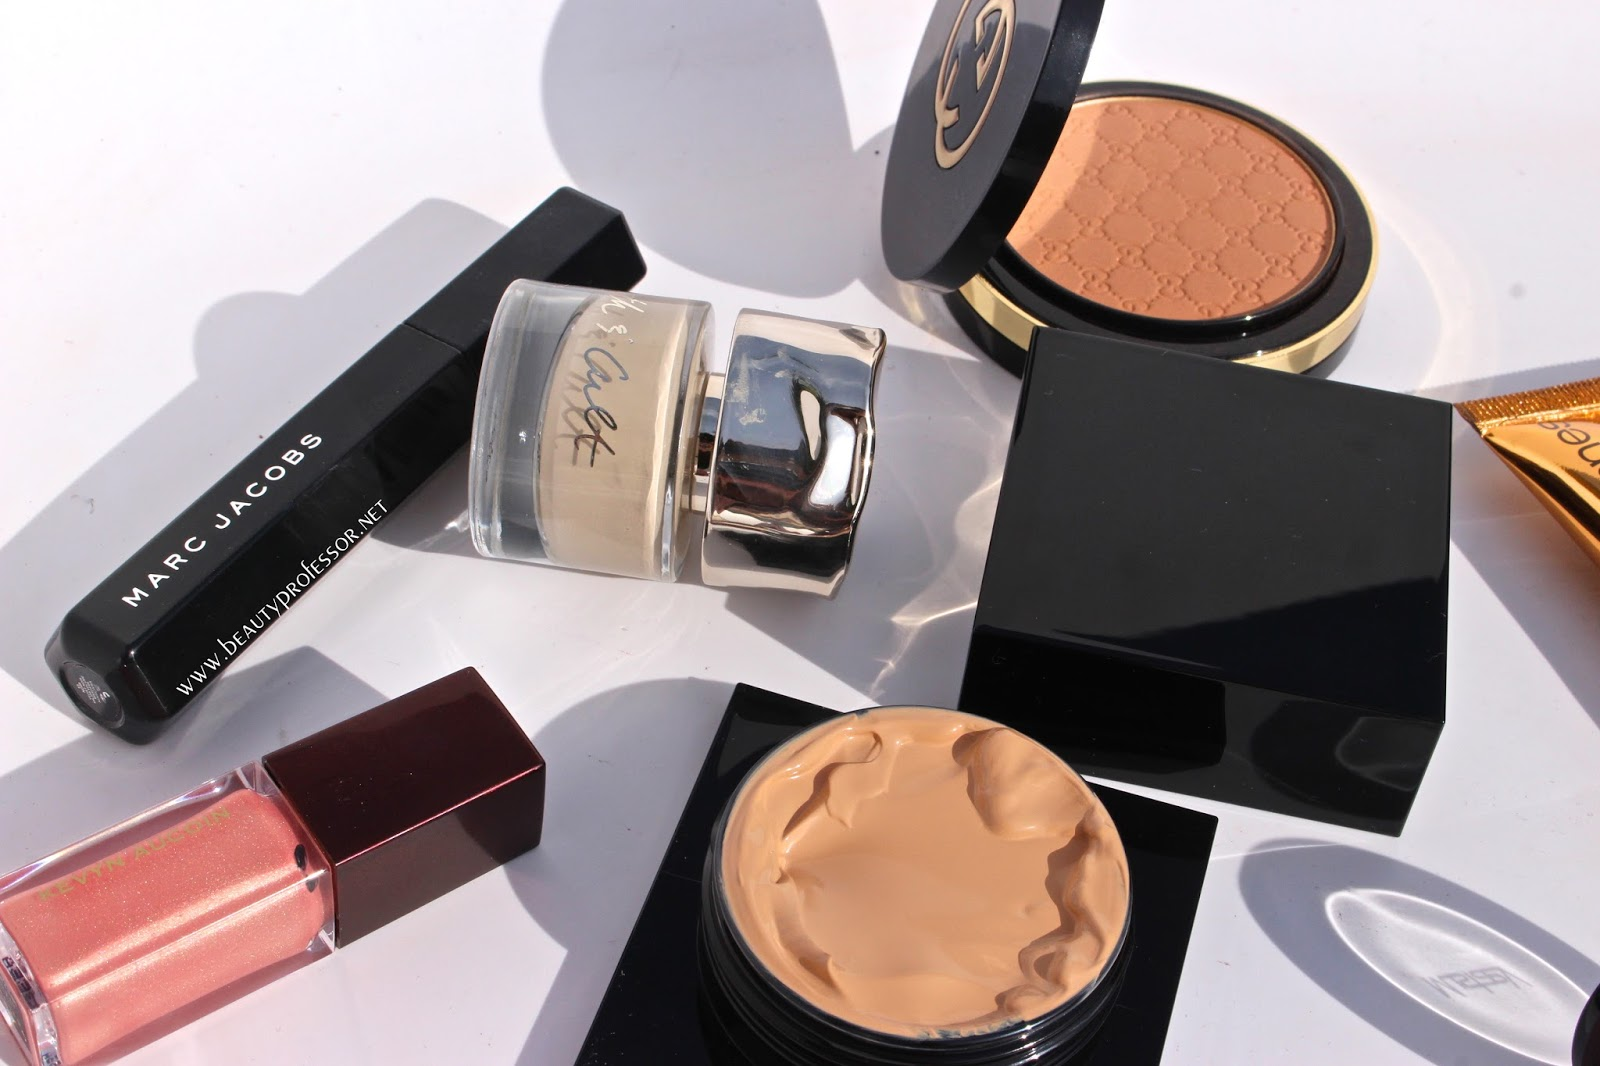 March Beauty: Products Inspired by Pantone's 2016 Colors of